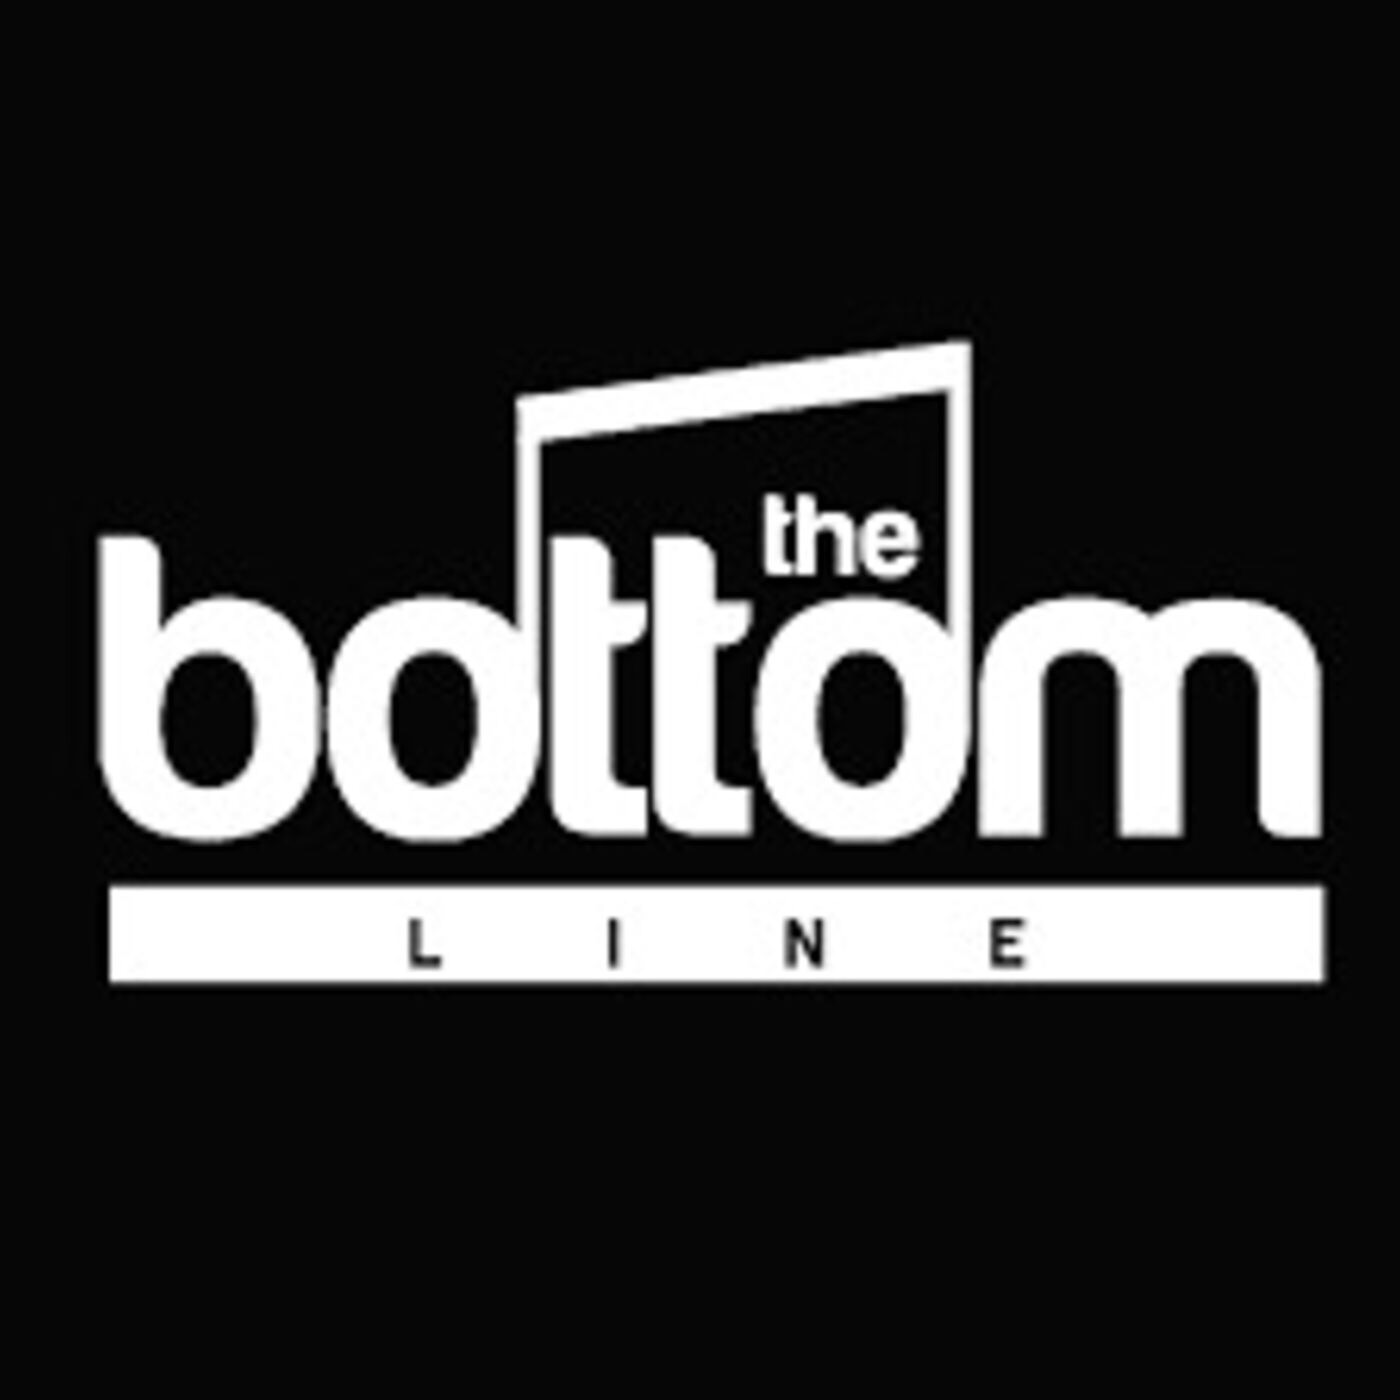 Partner Announcement - The Bottom Line